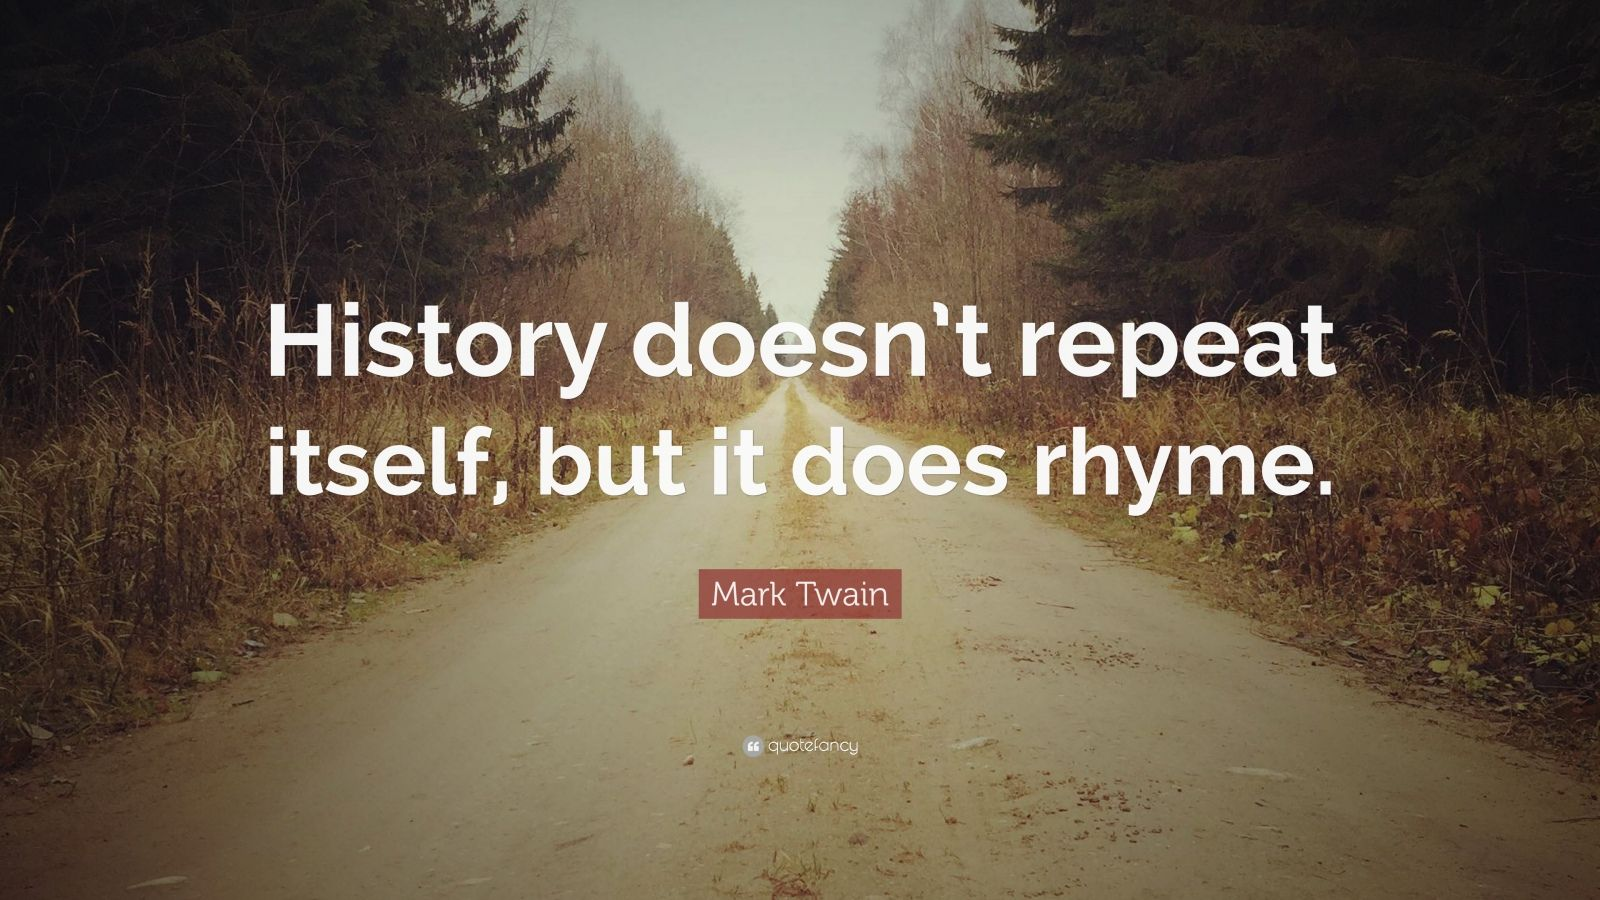 does history repeat itself essay While not recurring in precisely the same way, historical events, and especially those of an economic, political or social nature, often correspond with later events and those unfolding in the present as mark twain put it, history does not repeat itself, but it does occasionally rhyme journalists.